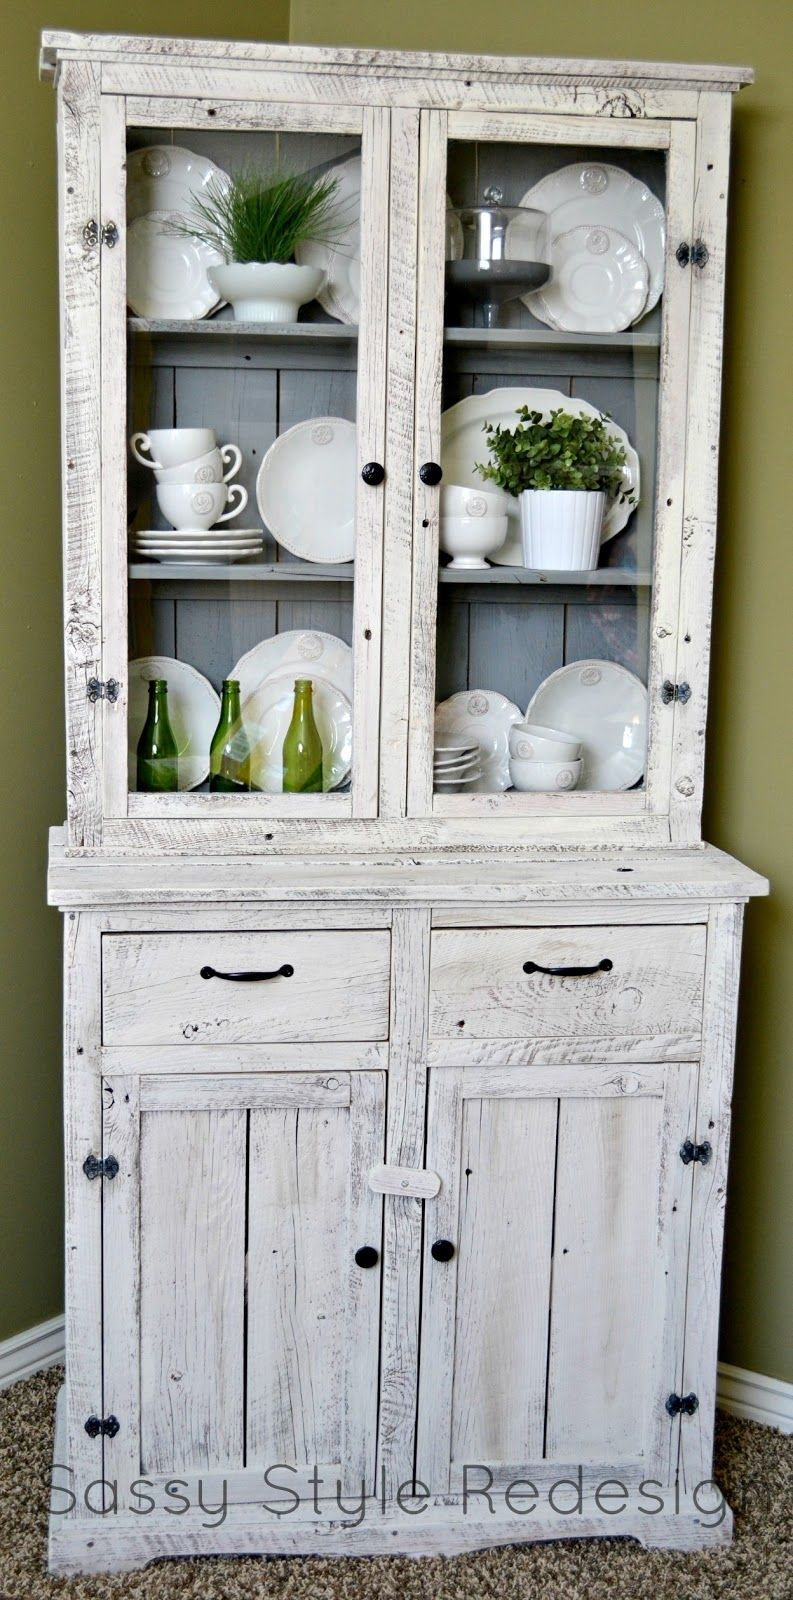 Sassy Style DIY Barnwood Hutch Makeover With Annie Sloan Chalk